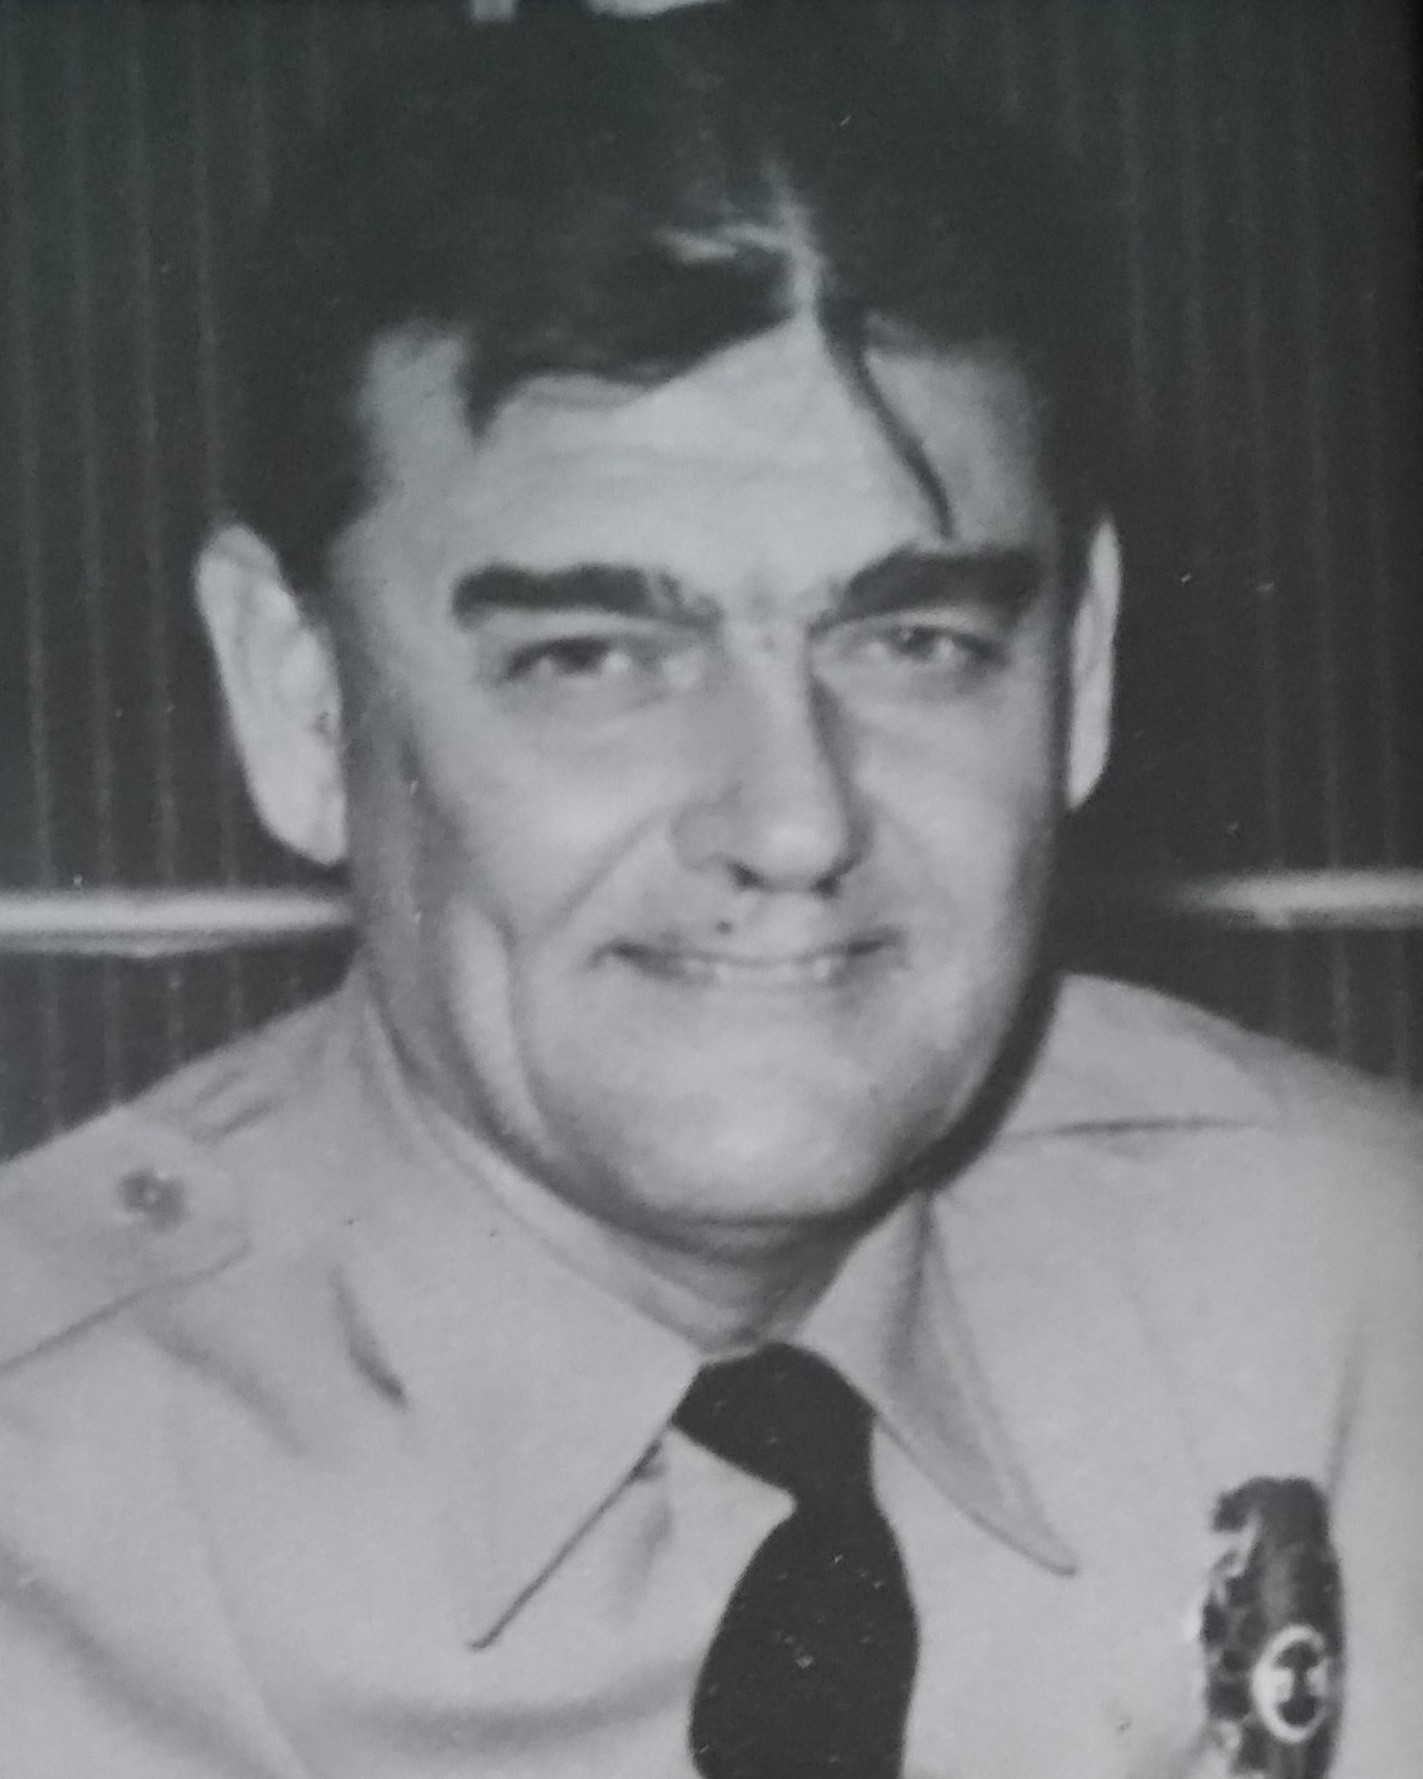 Officer Murray F. Olsen | Los Angeles County Department of Health Services, California